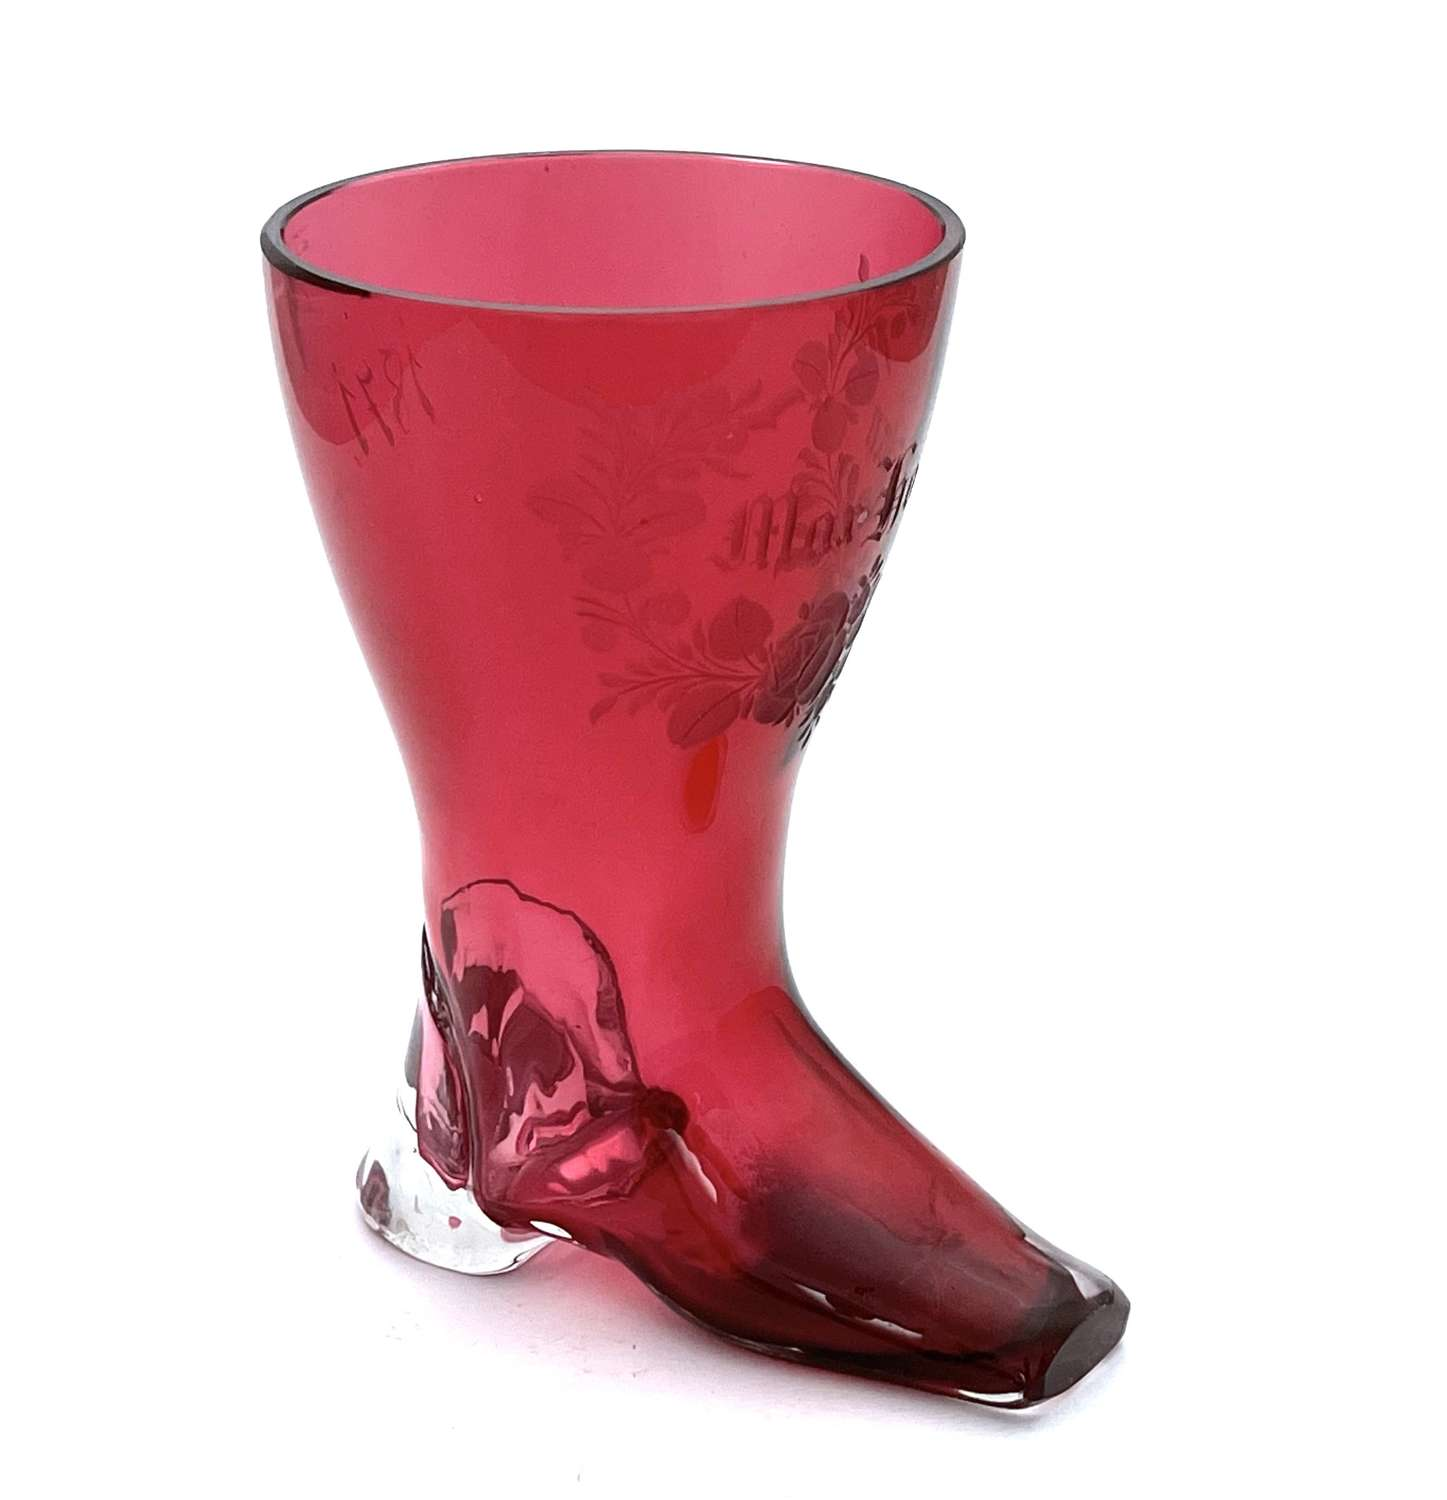 Antique Whimsical Cranberry Glass Boot Drinking Vessel